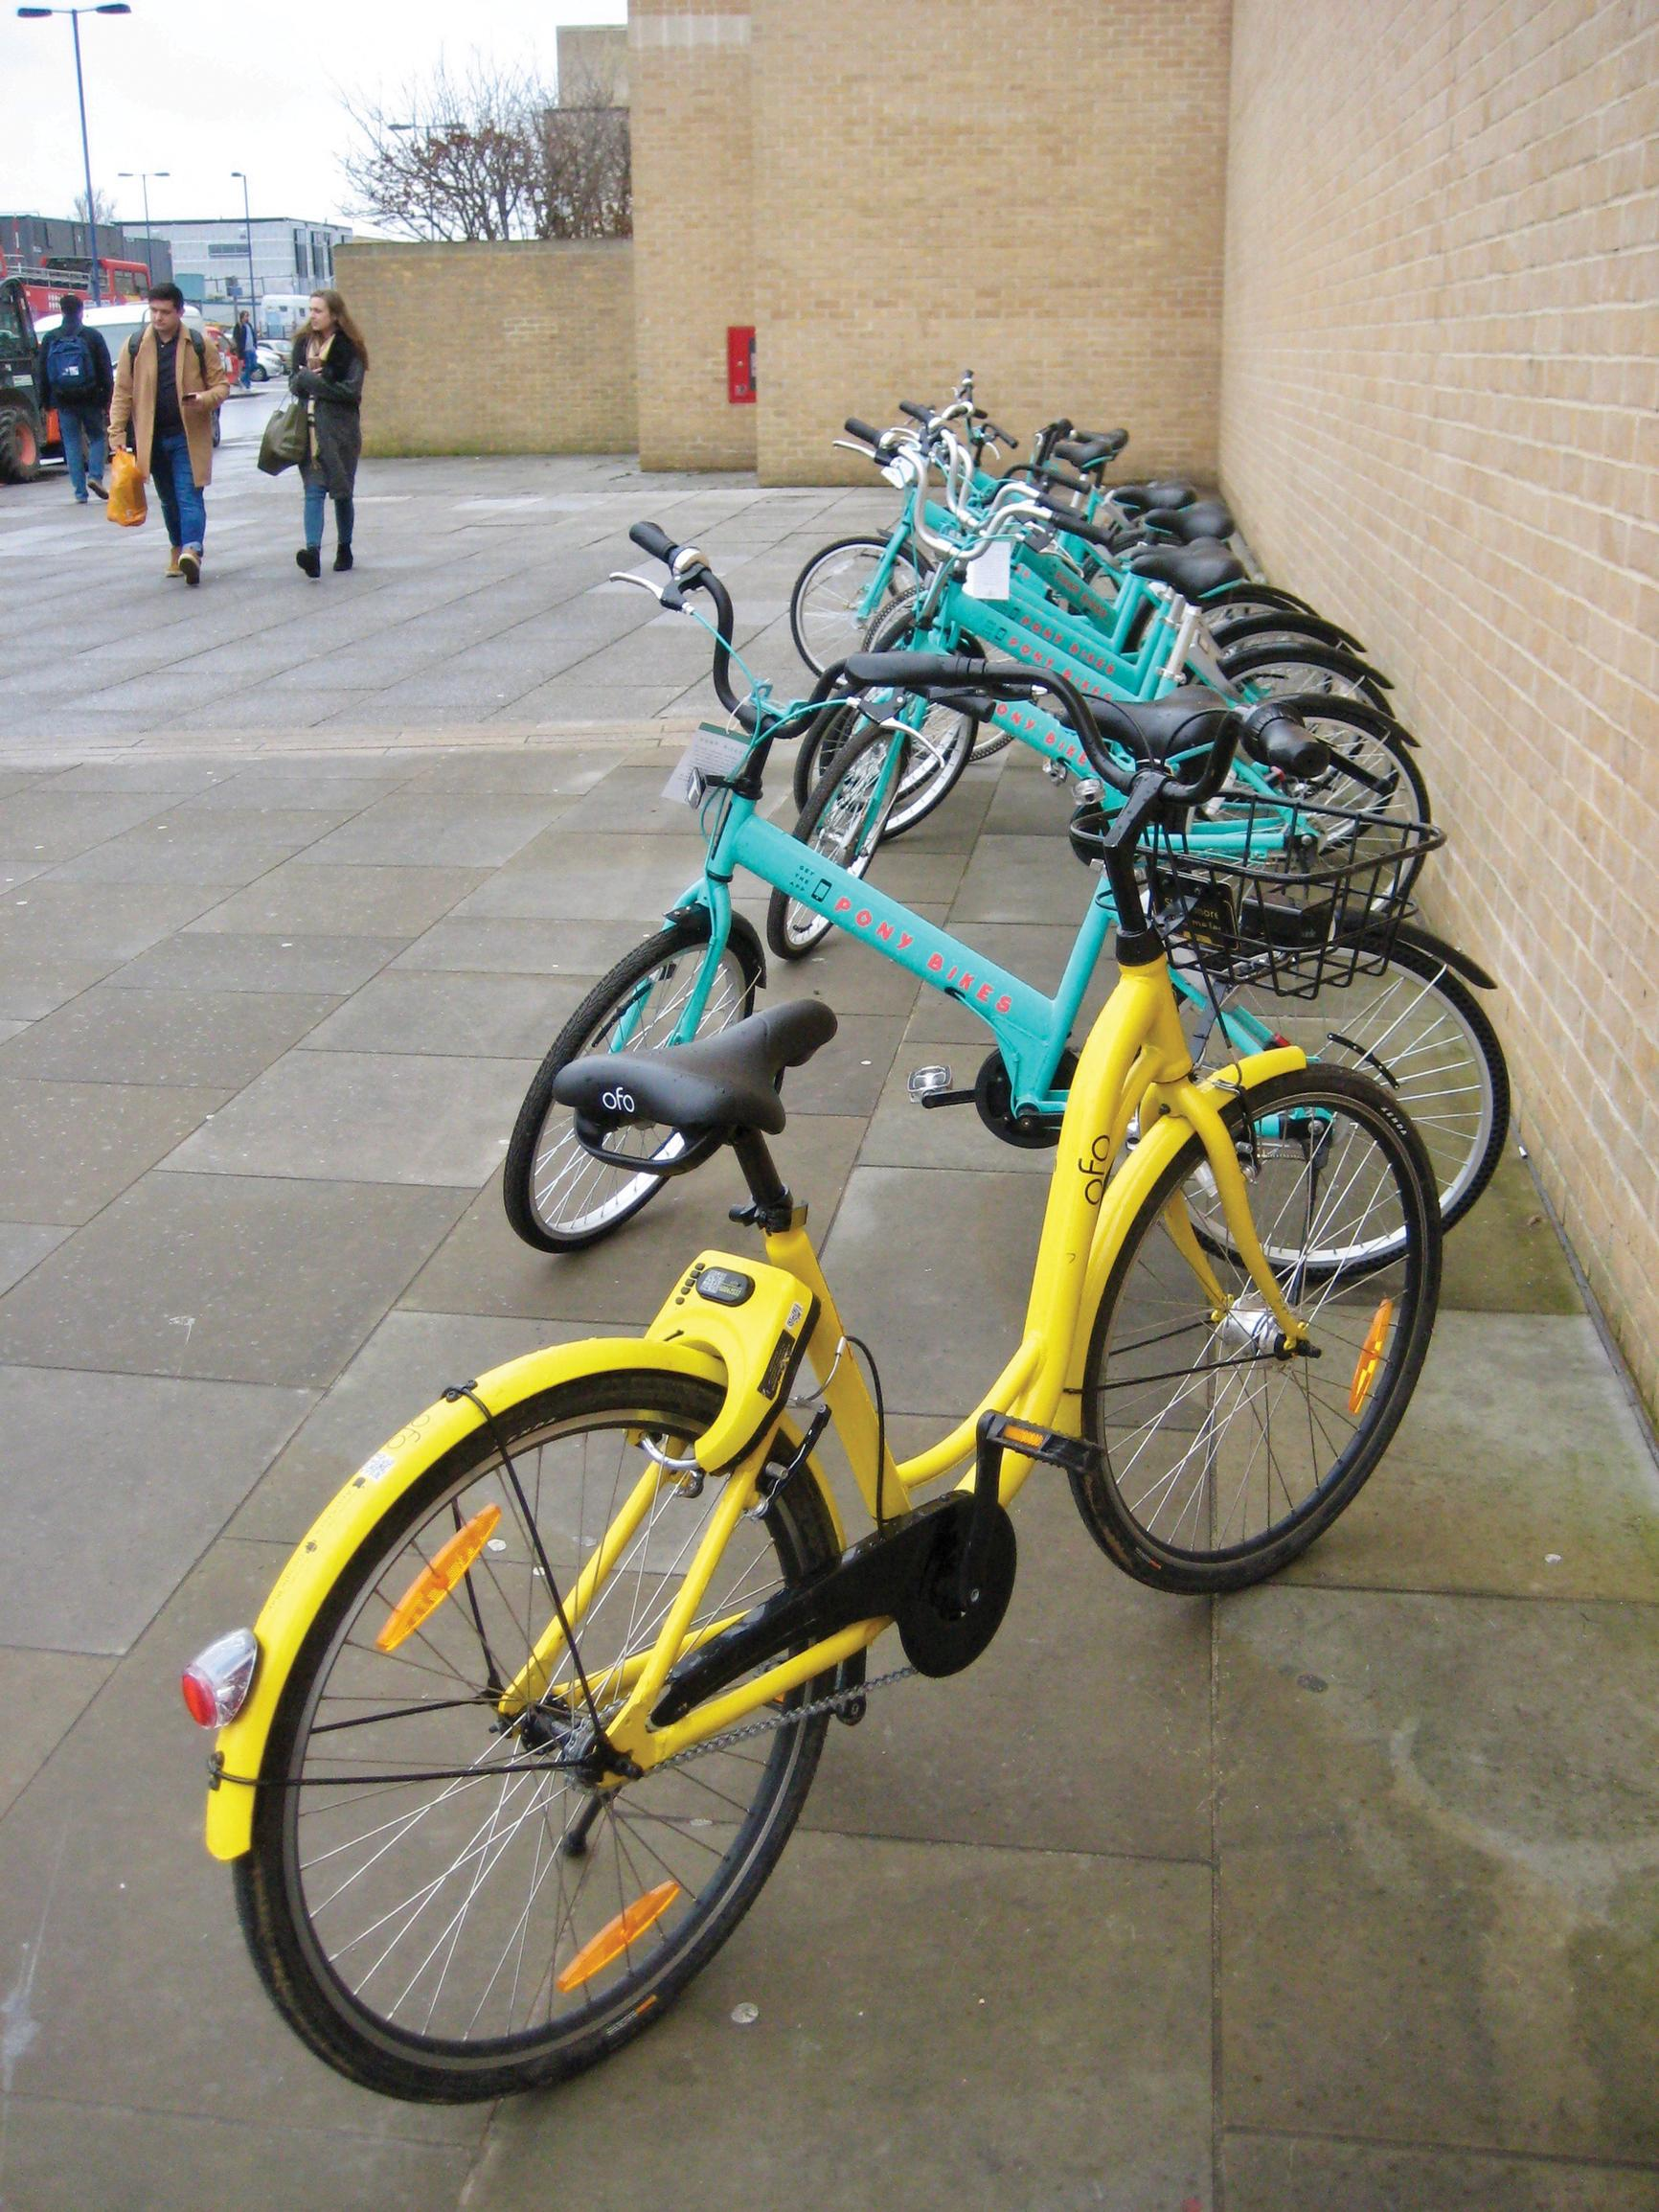 Oxford has three dockless bike hire operators, which could be incorporated into a MaaS operation